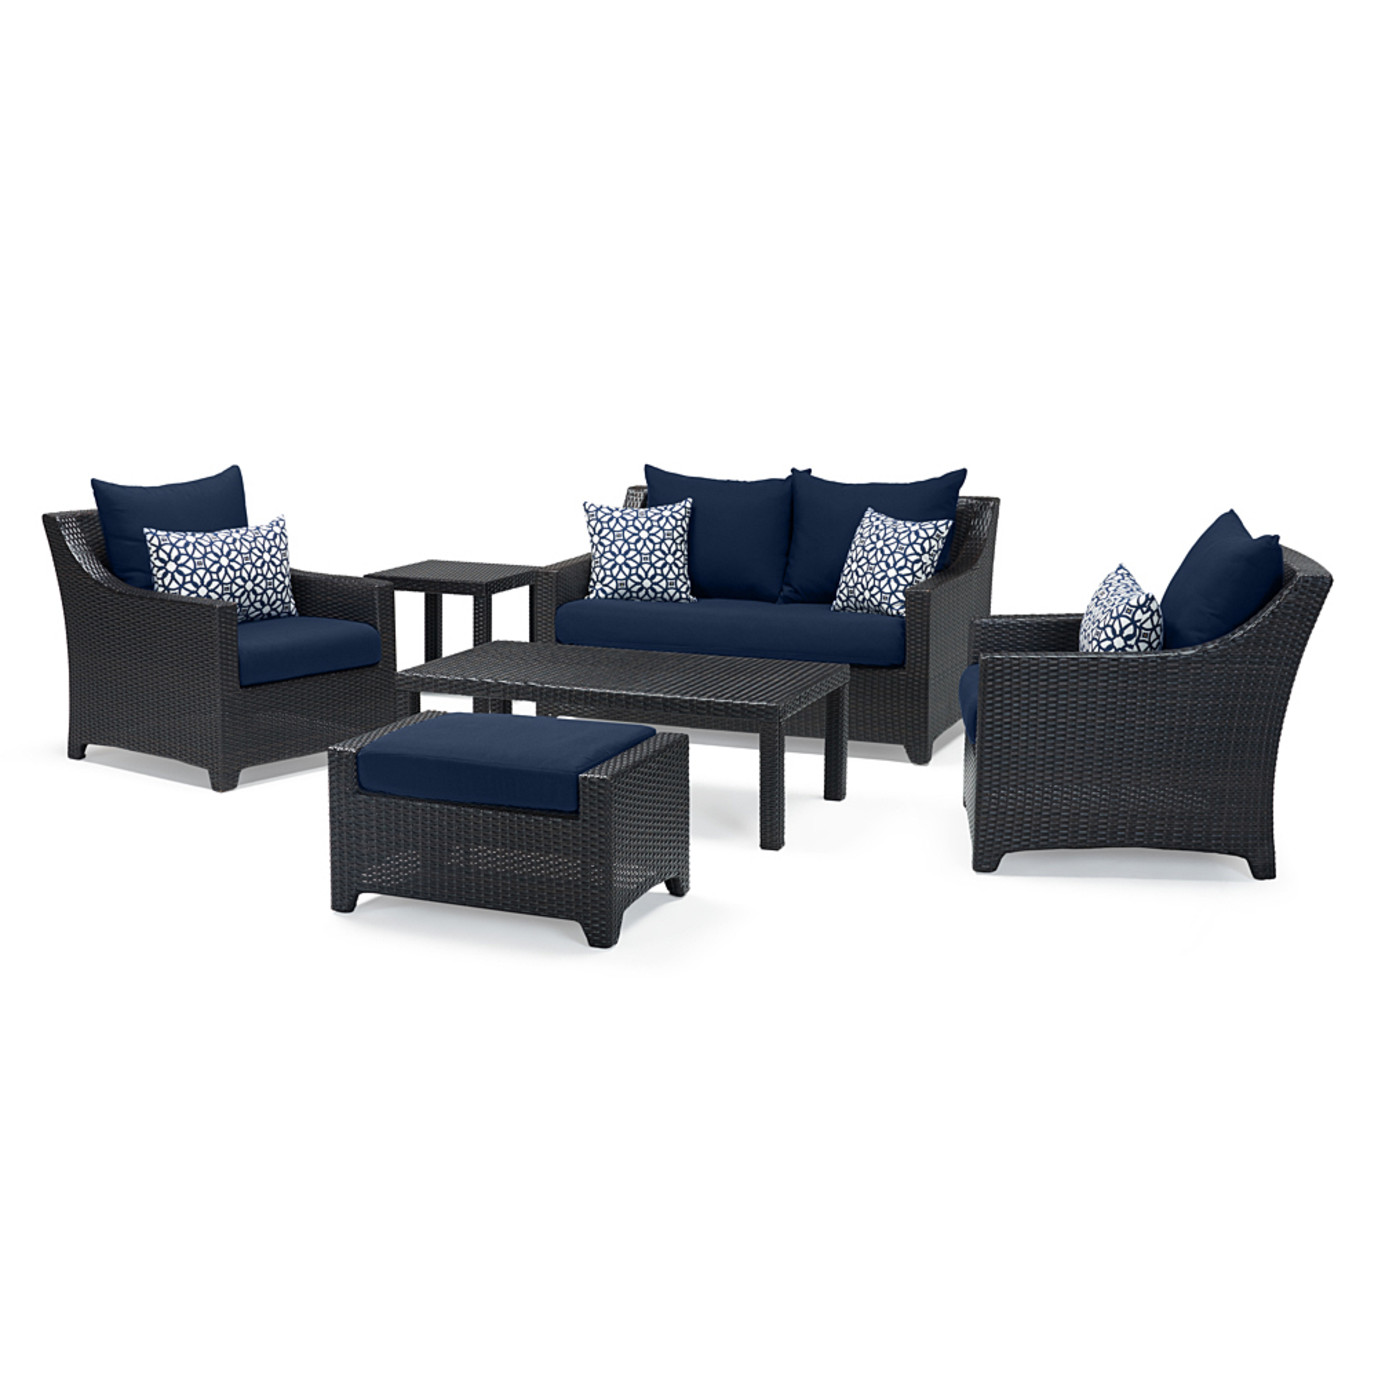 Deco™ 6pc Love and Club Seating Set - Navy Blue